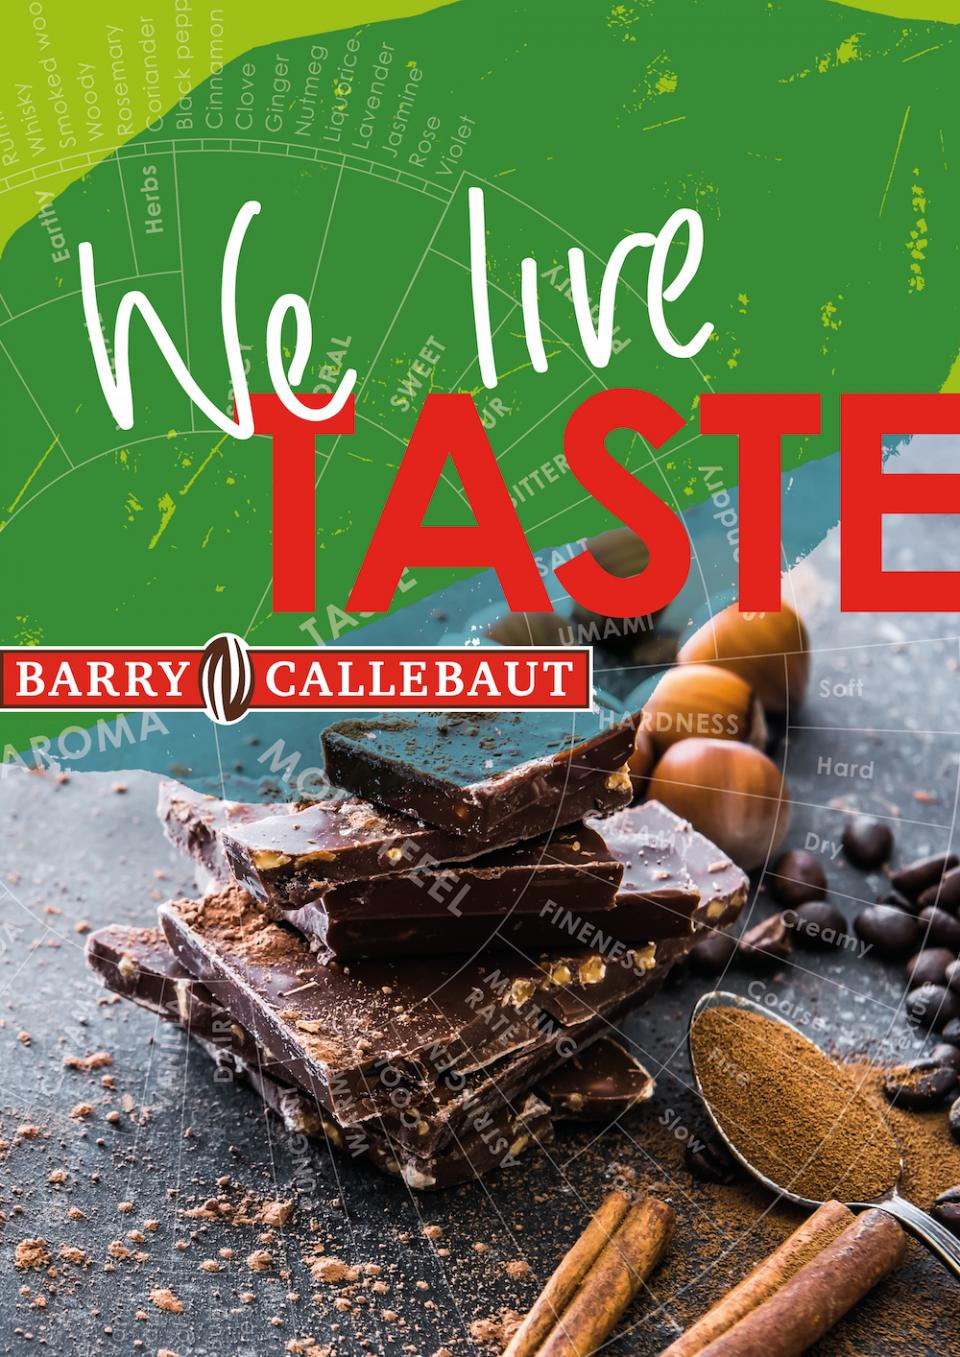 Barry Callebaut - We live taste